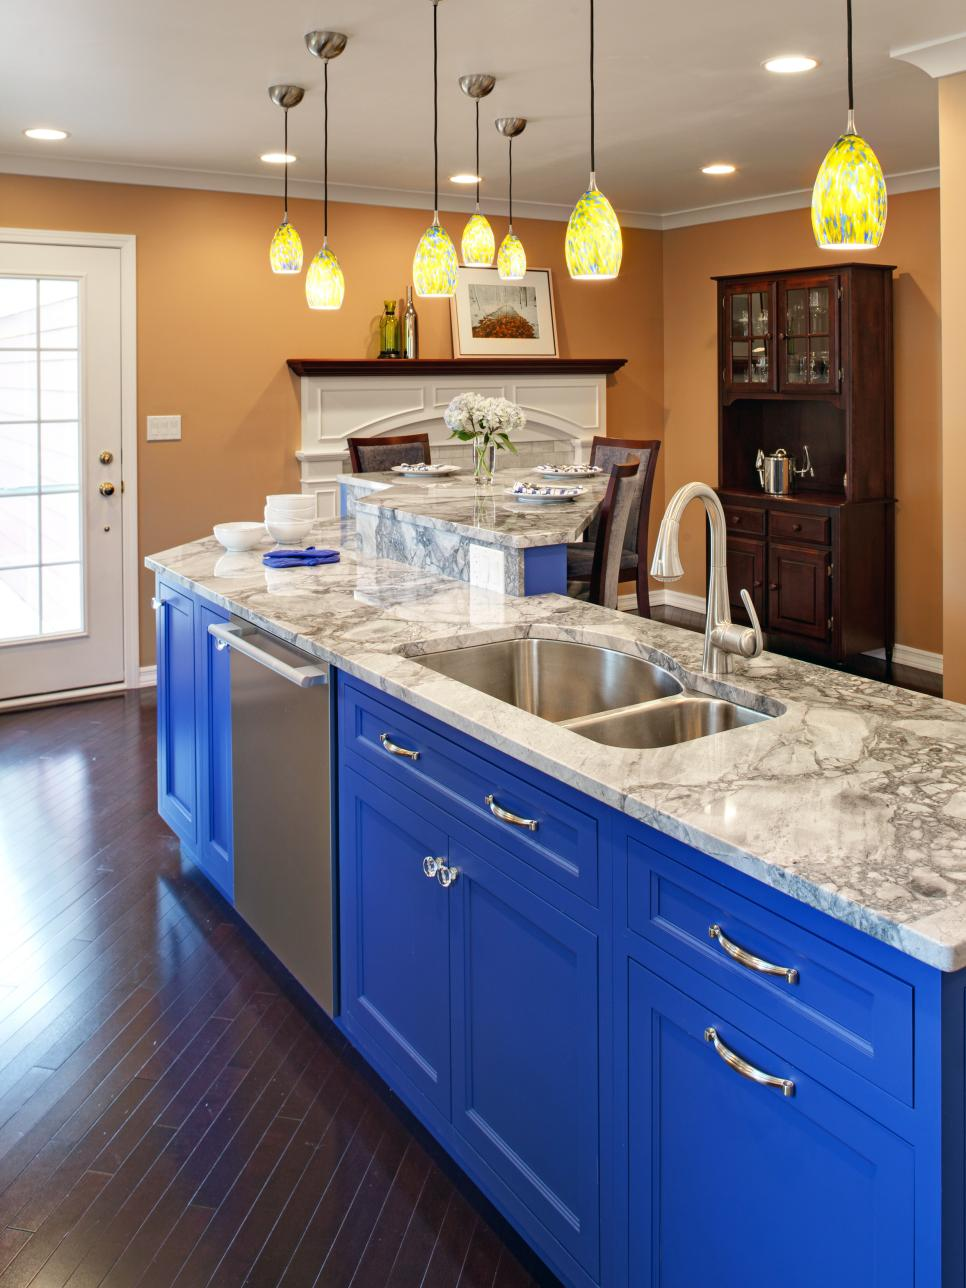 hgtv's best pictures of kitchen cabinet color ideas from top